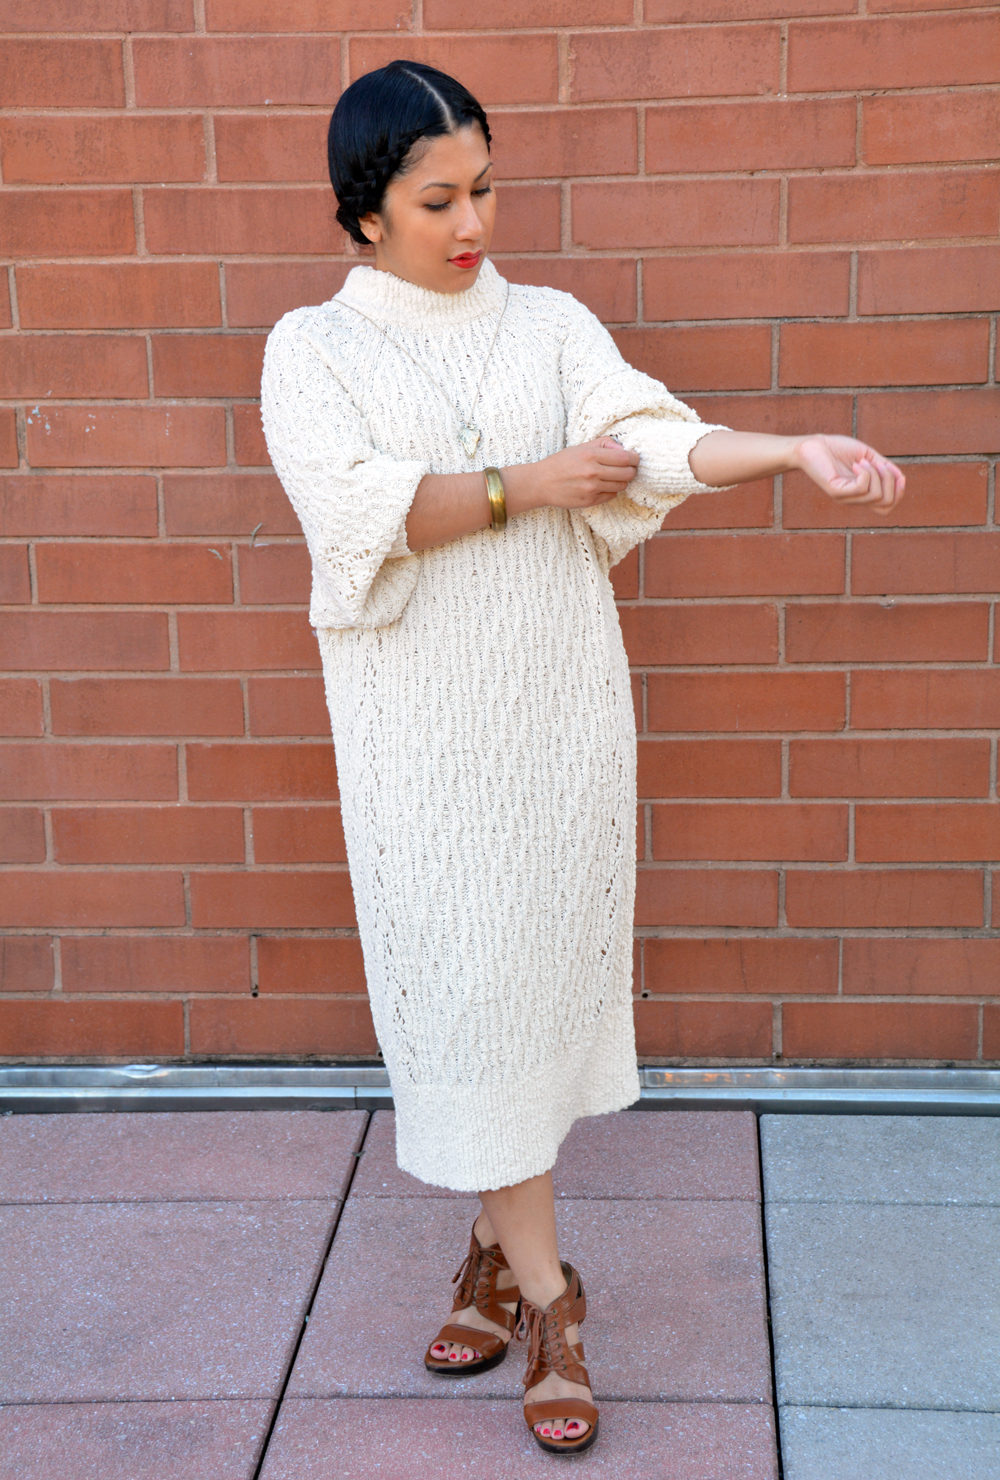 H&M sweater dress